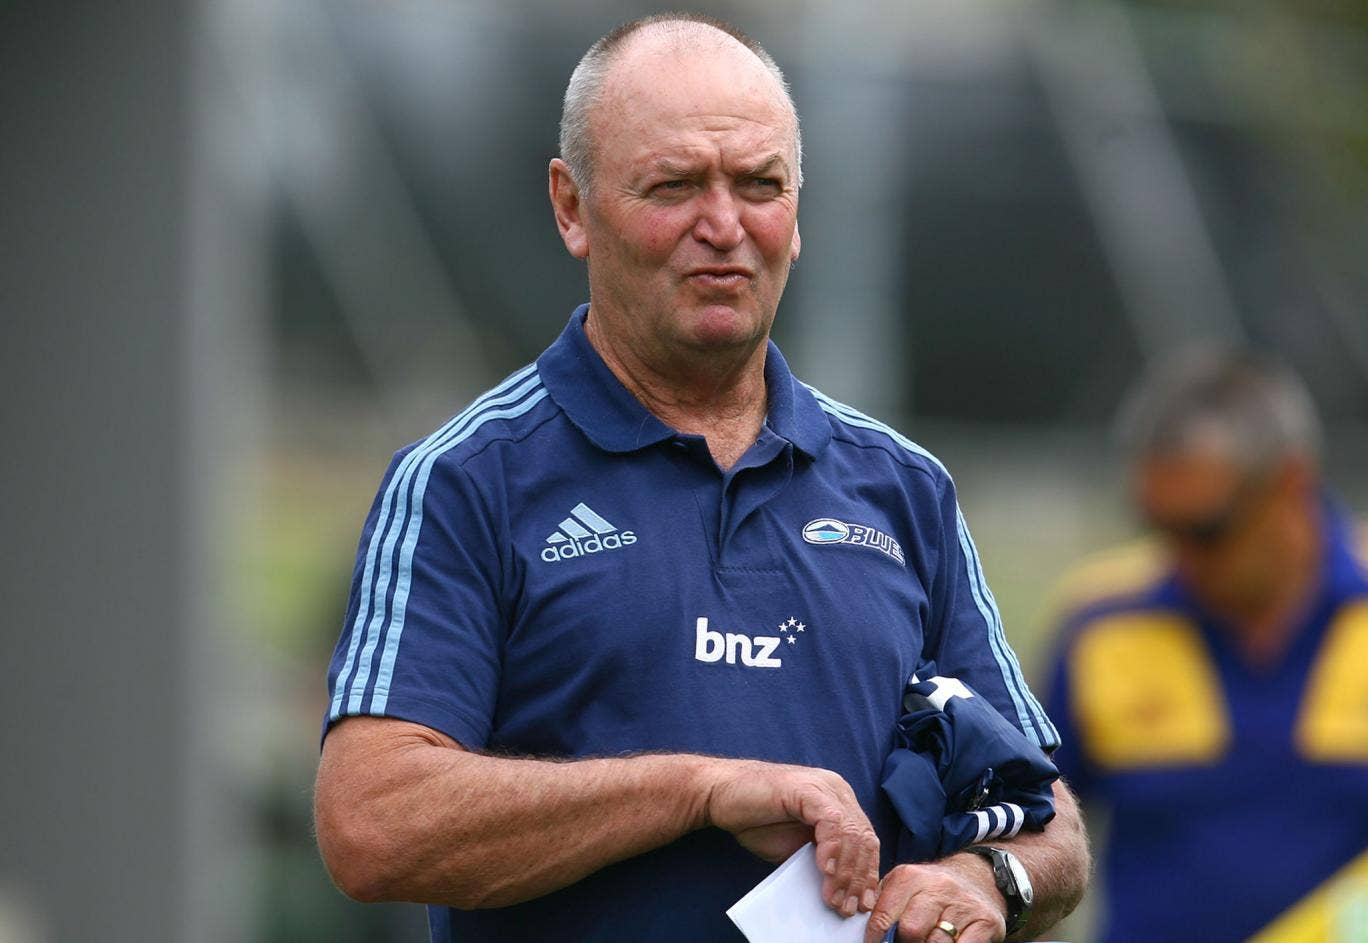 Auckland Blues defense coach Graham Henry may face disciplinary action over comments made about referee Glen Jackson